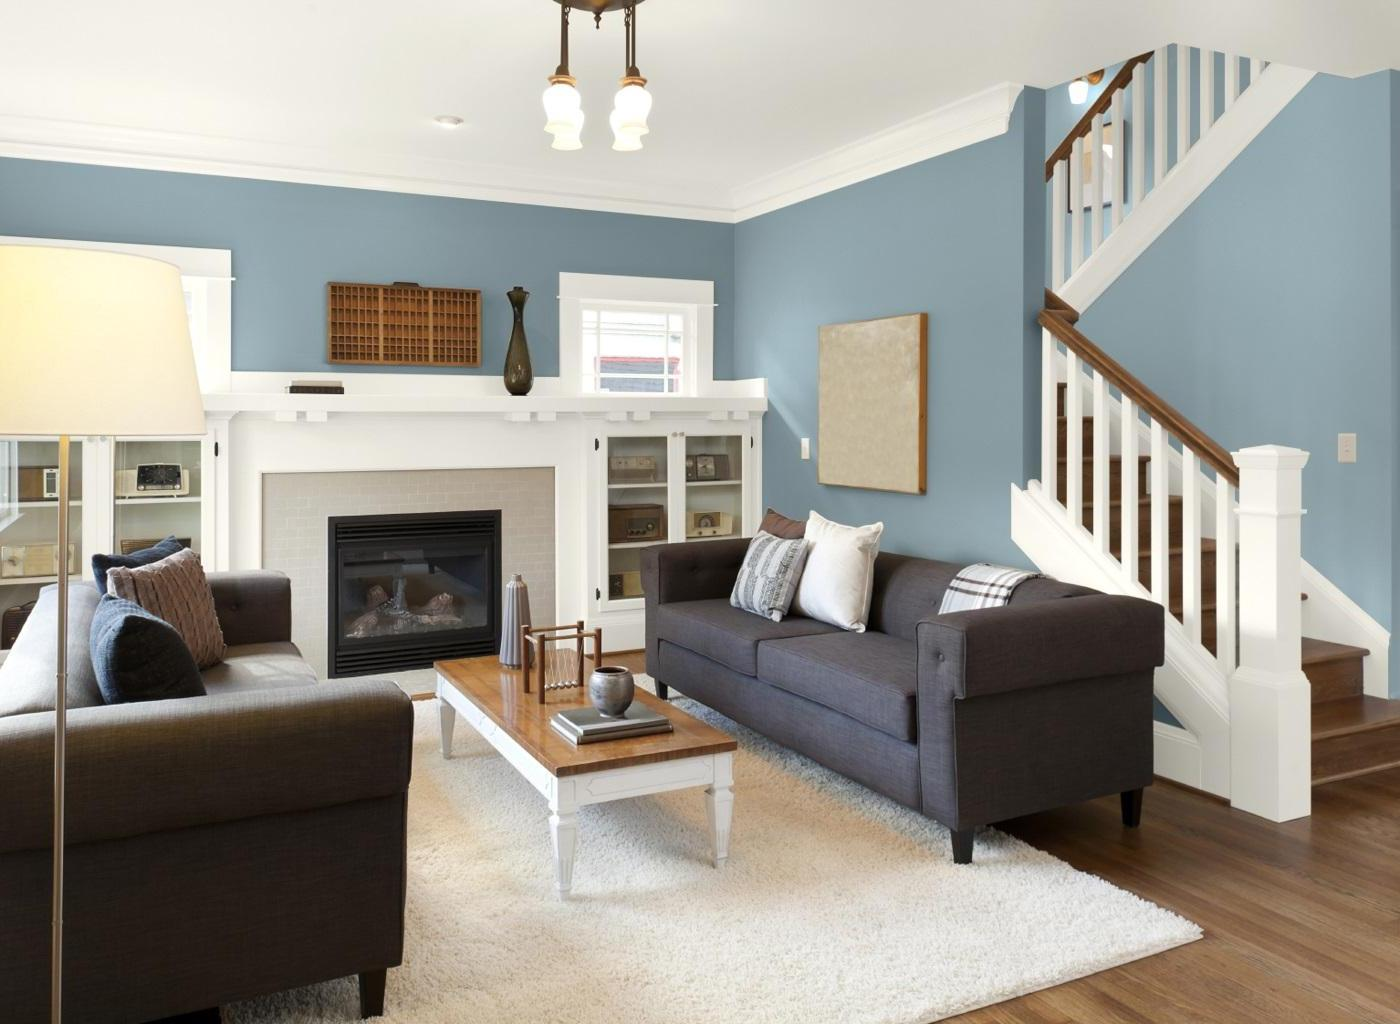 Best Color For Living Room Walls Of Modest Blue Decor Ideas And Livin Good